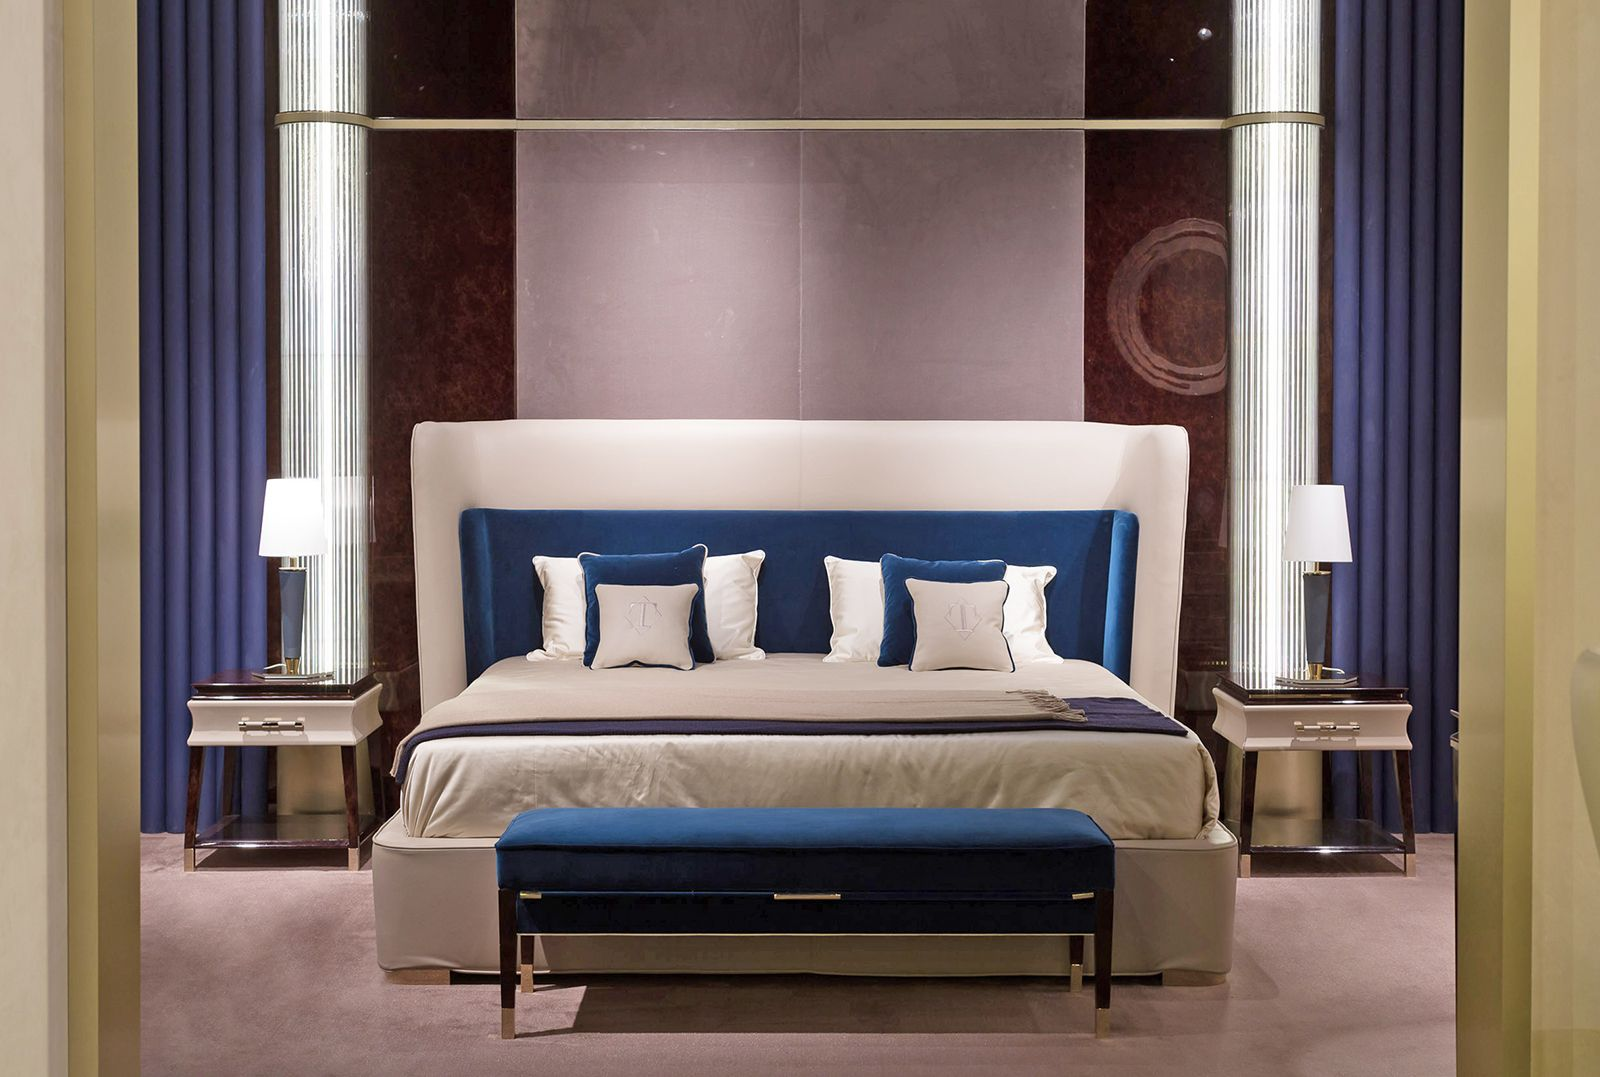 Italian Furniture for exclusive and modern design Style